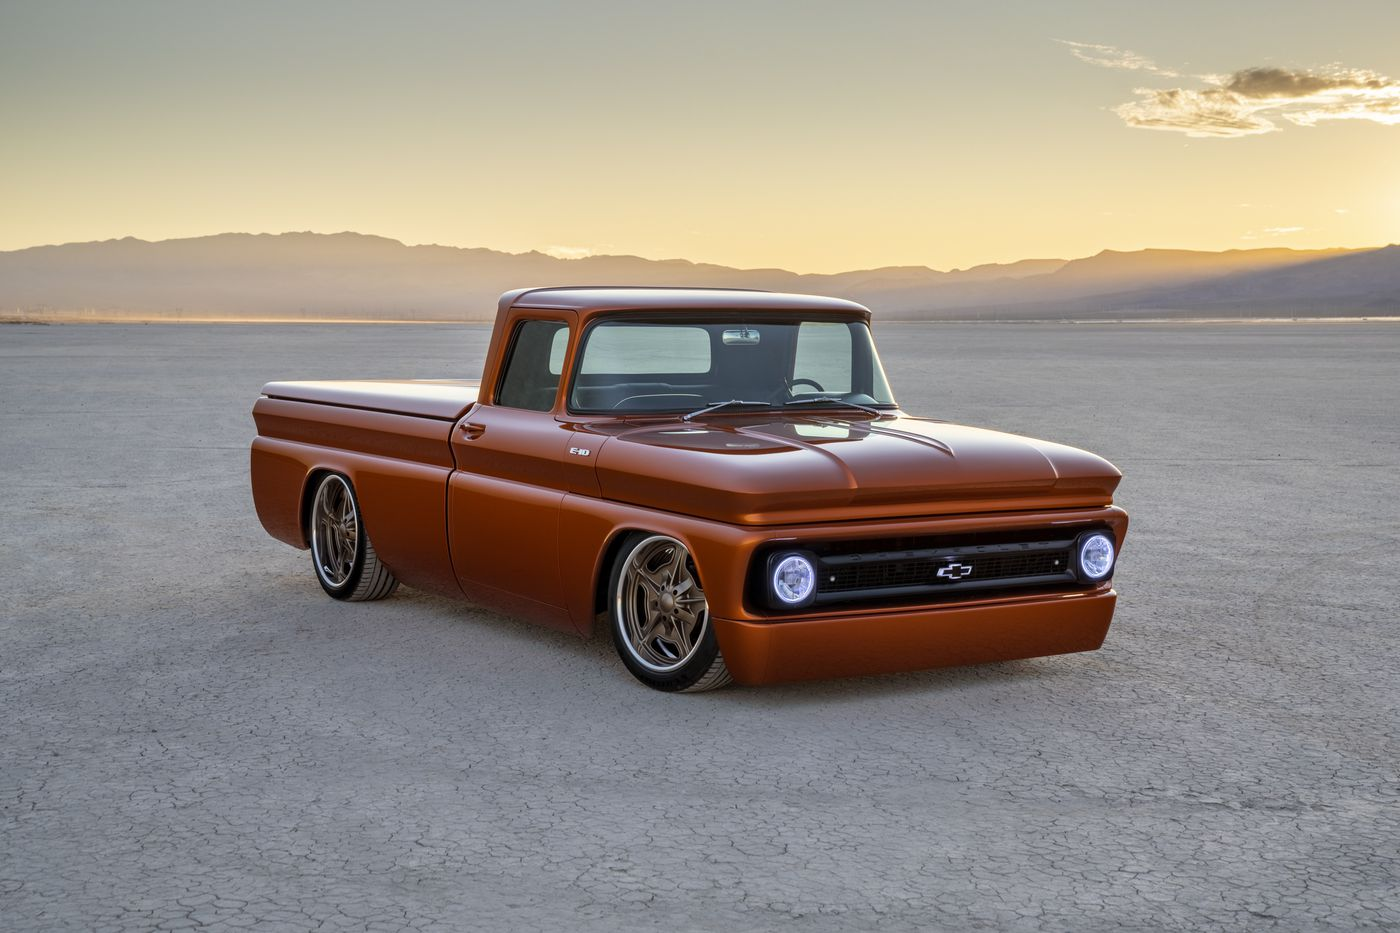 Gm Turned A 1960s Pickup Into An Electric Hot Rod The Verge